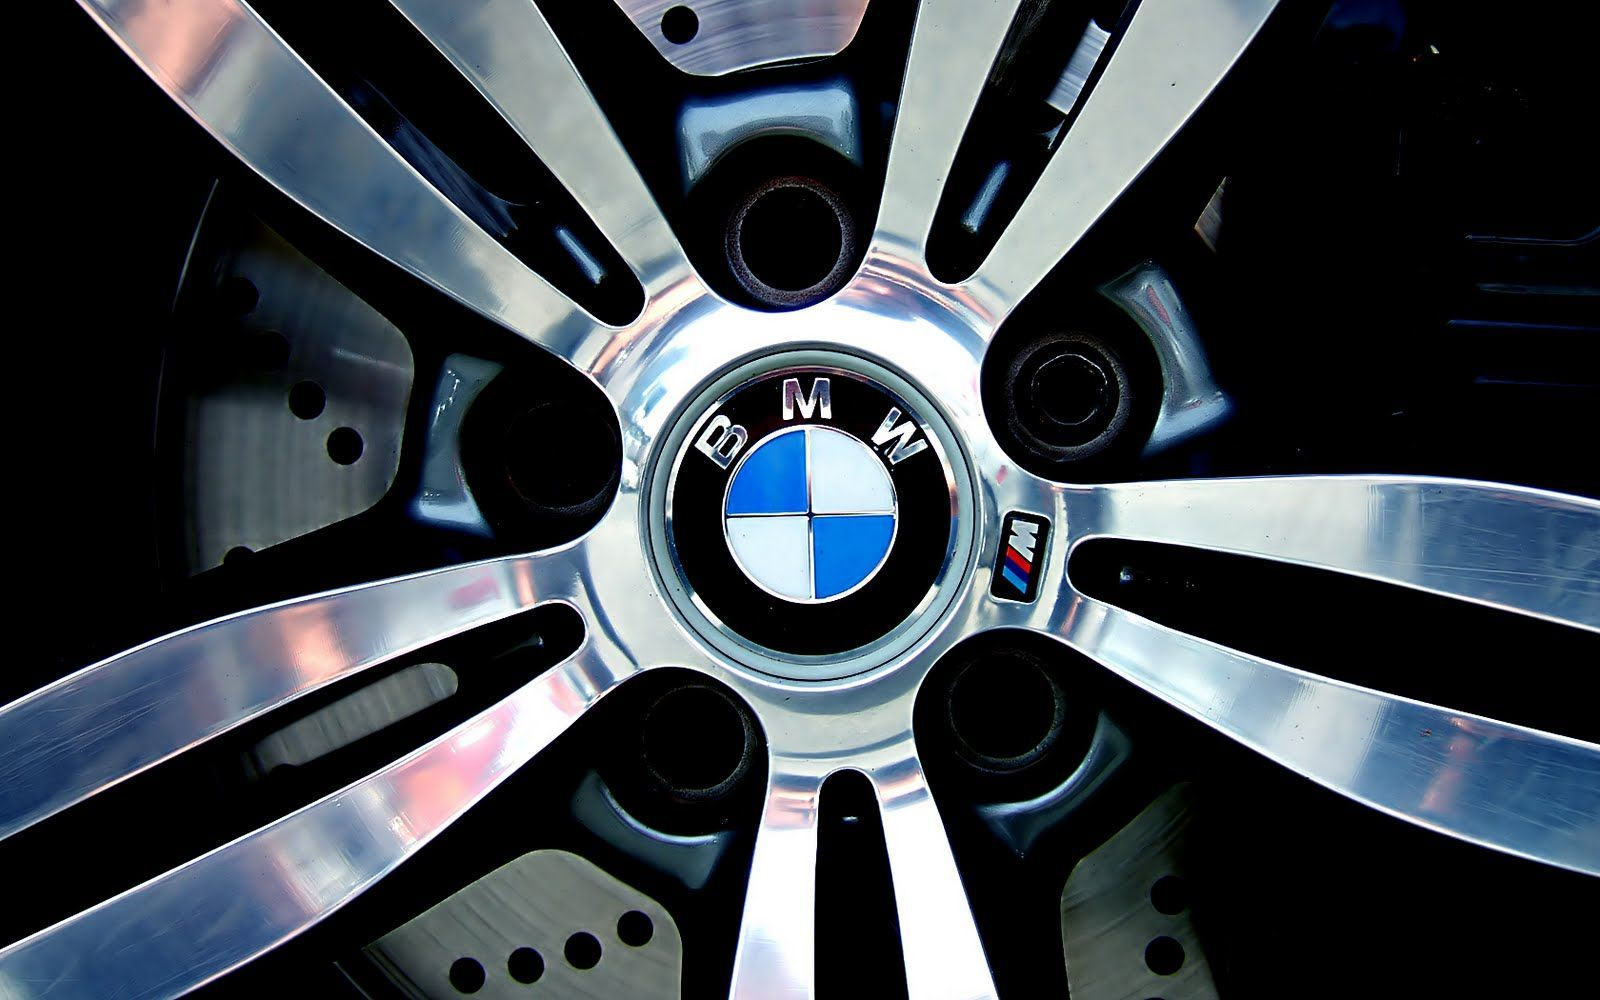 bmw rim computer background 365